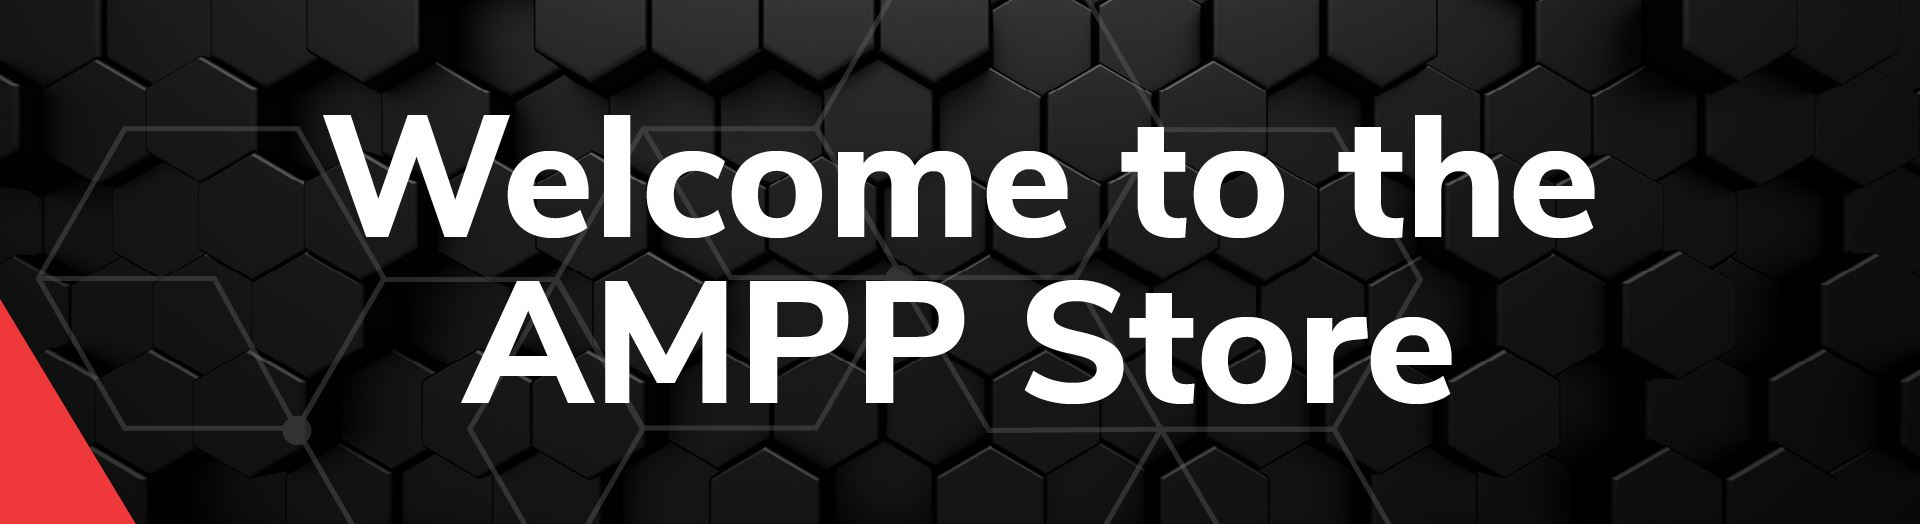 Welcome to the AMPP Store